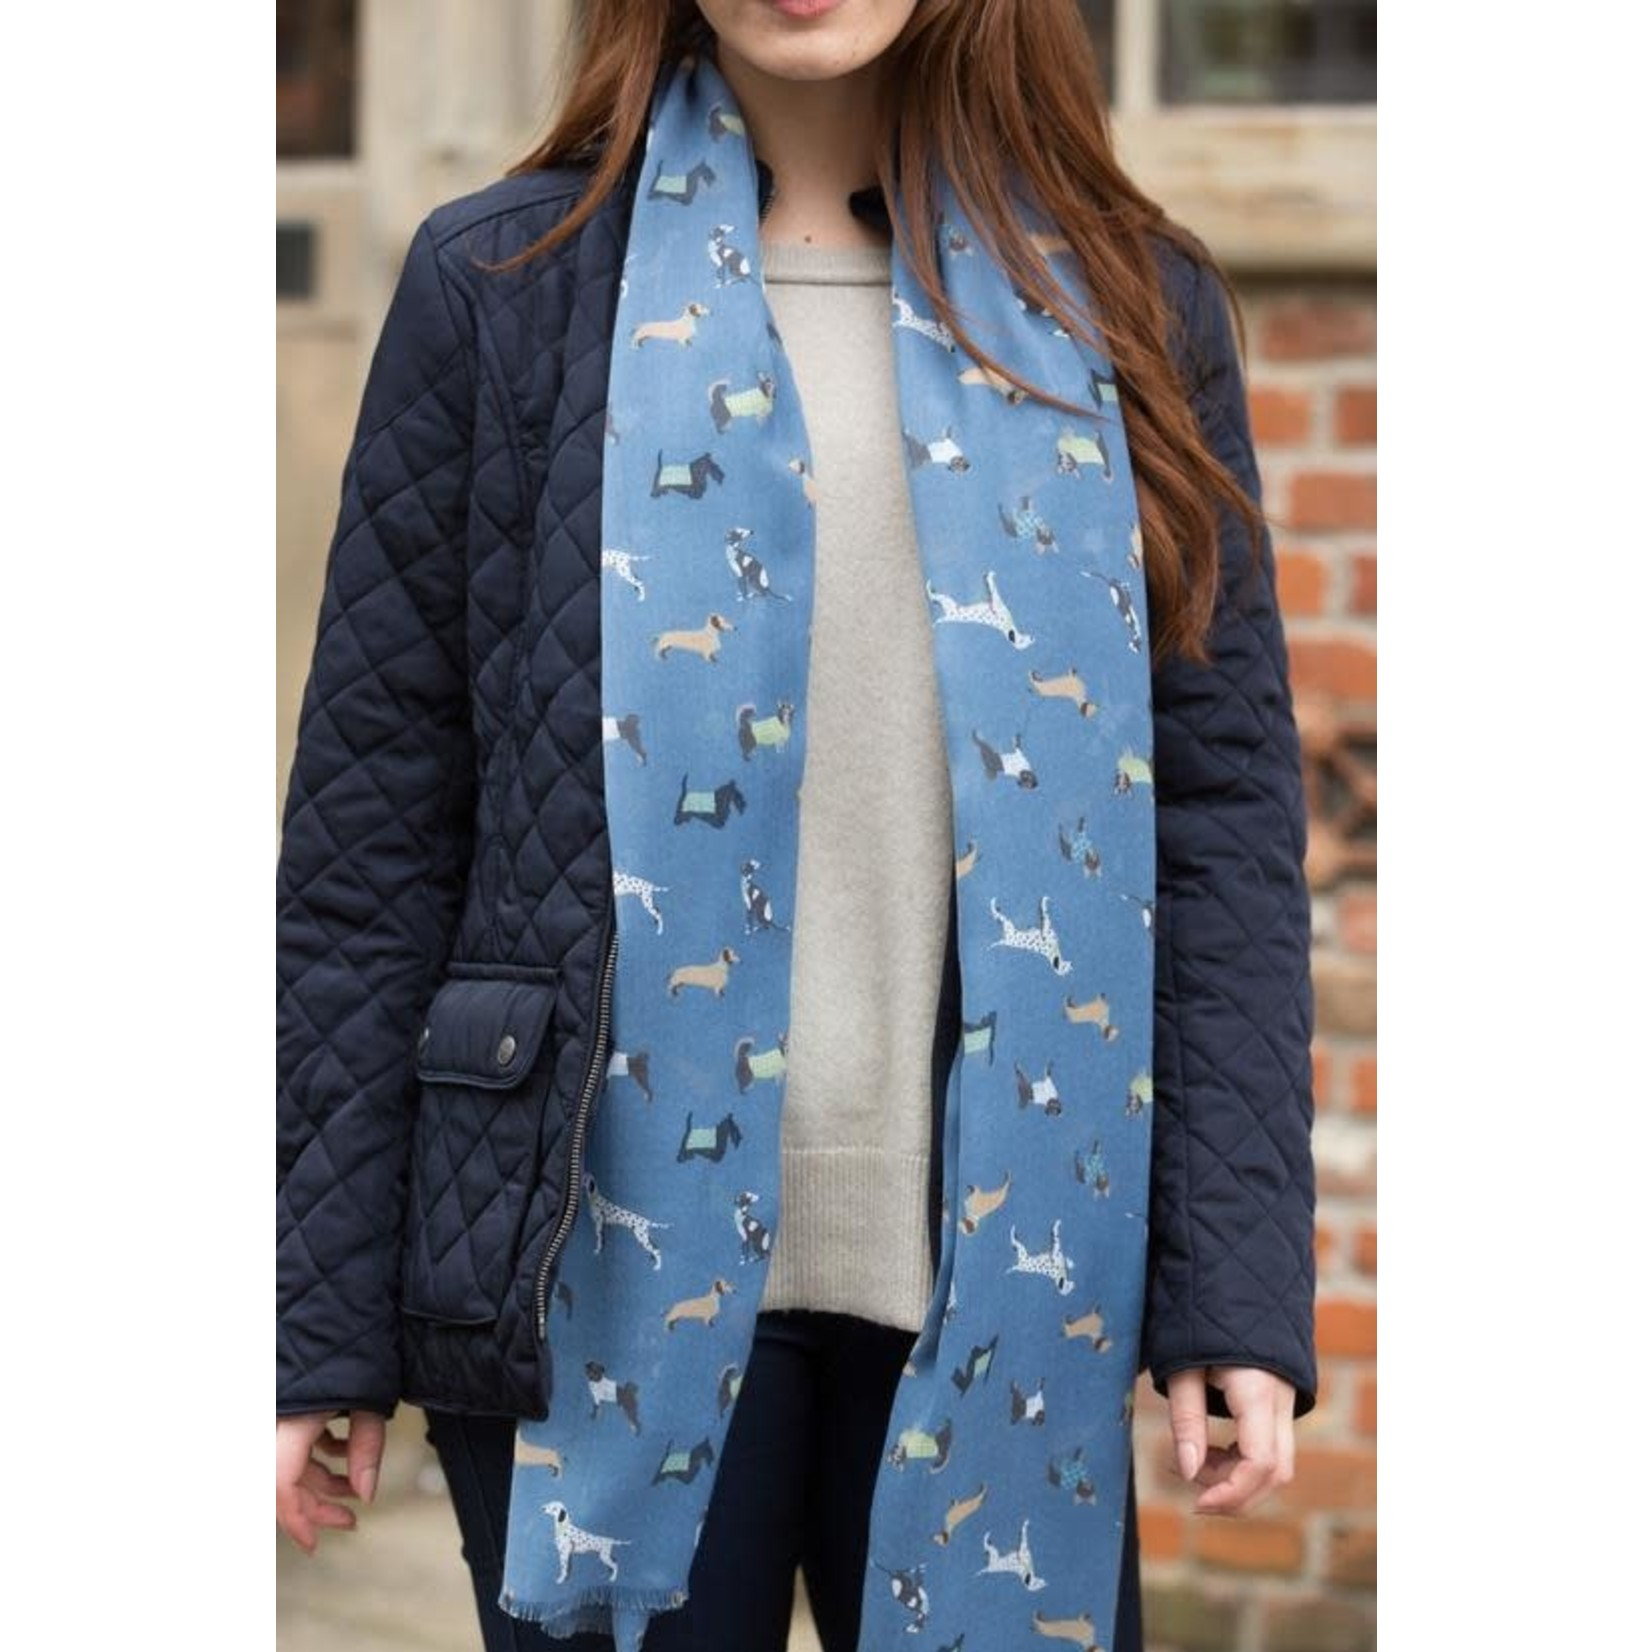 Peony Accessories Paws Scarf in Navy